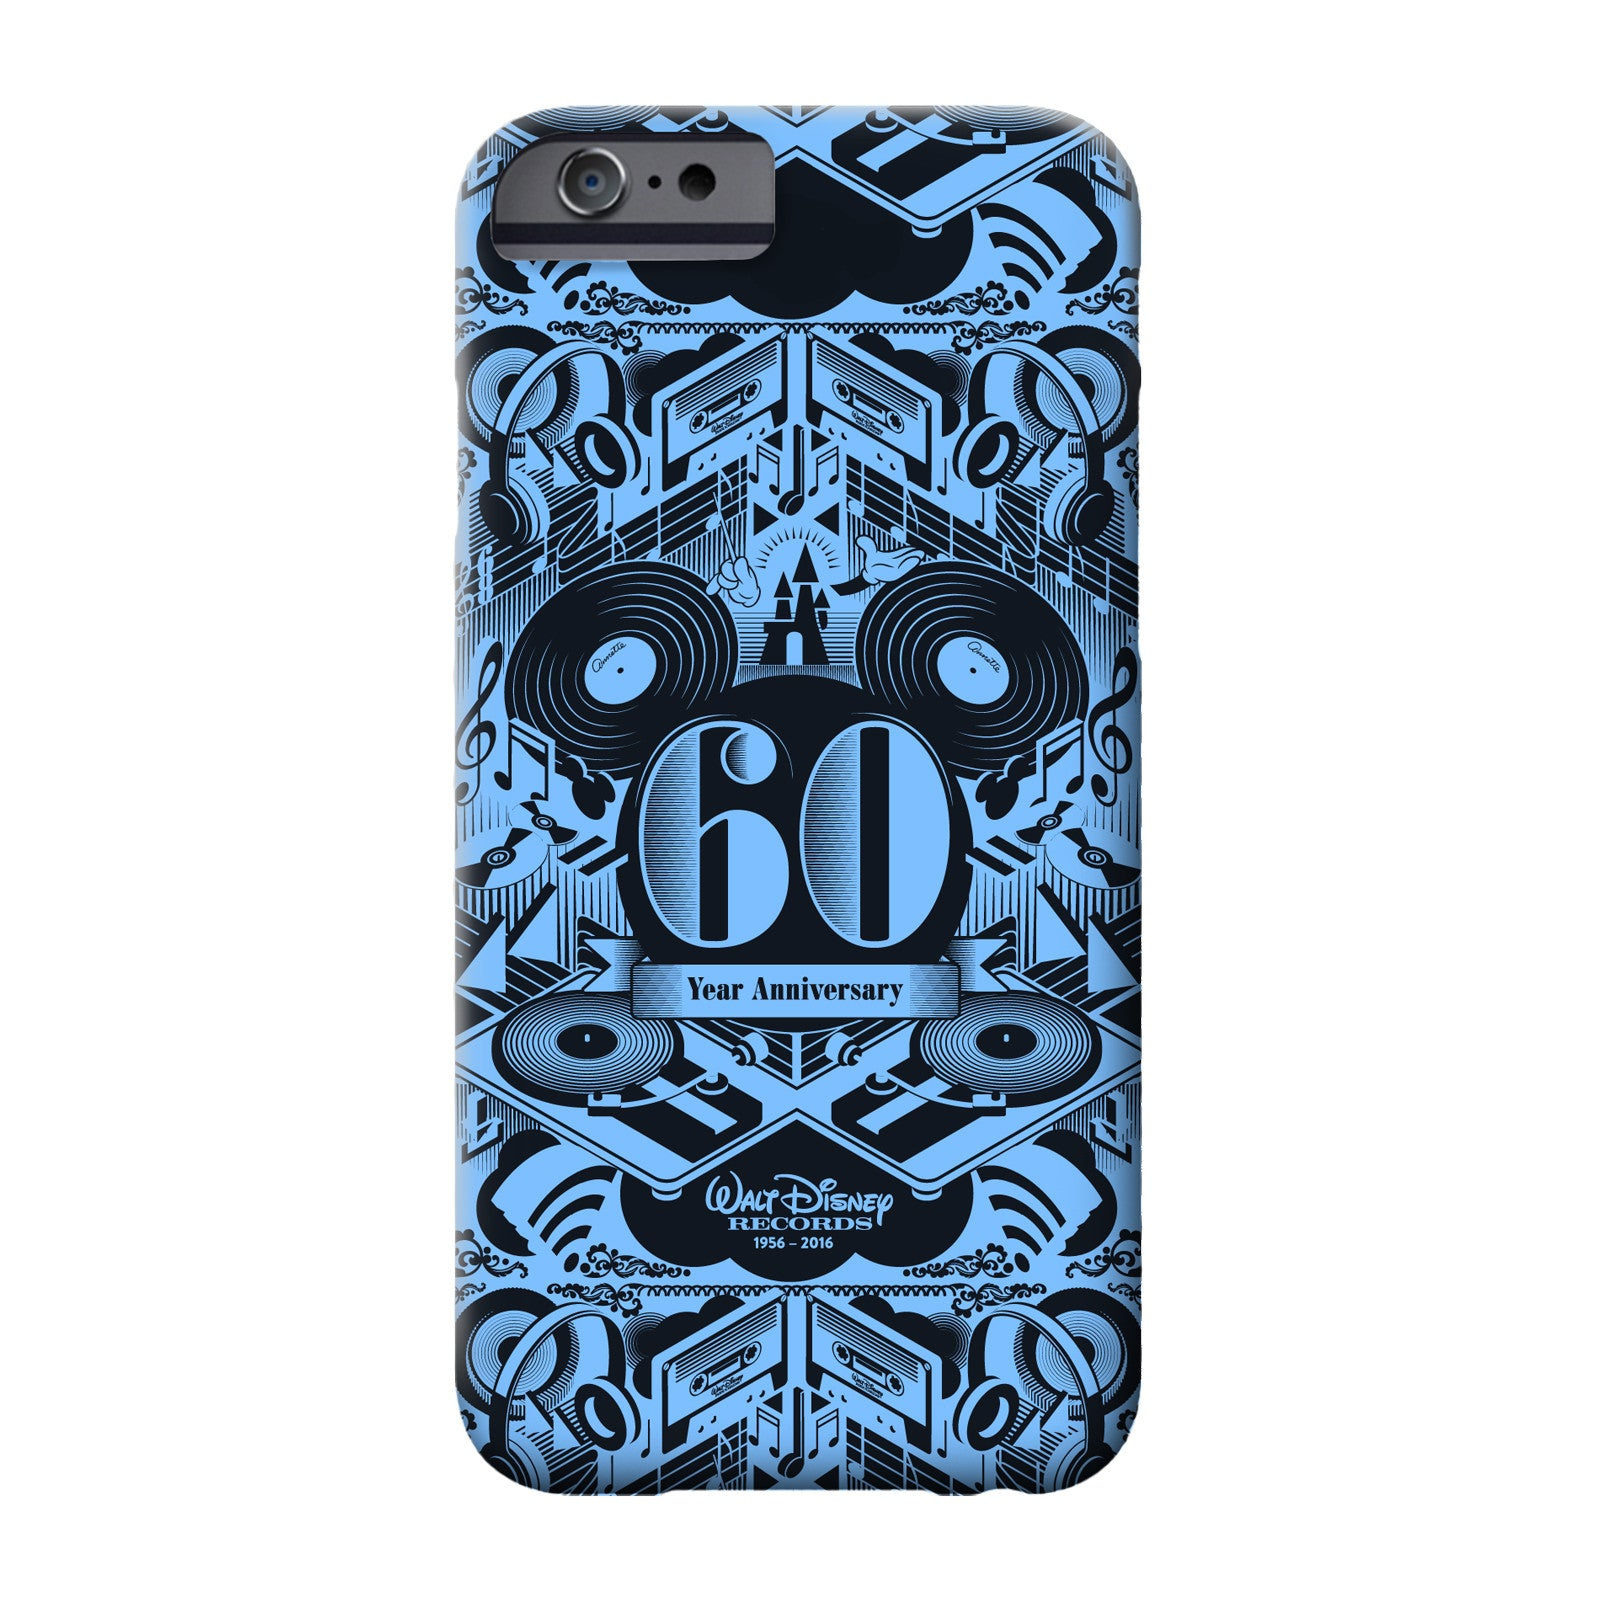 WDR 60 Year Anniversary Phone Case